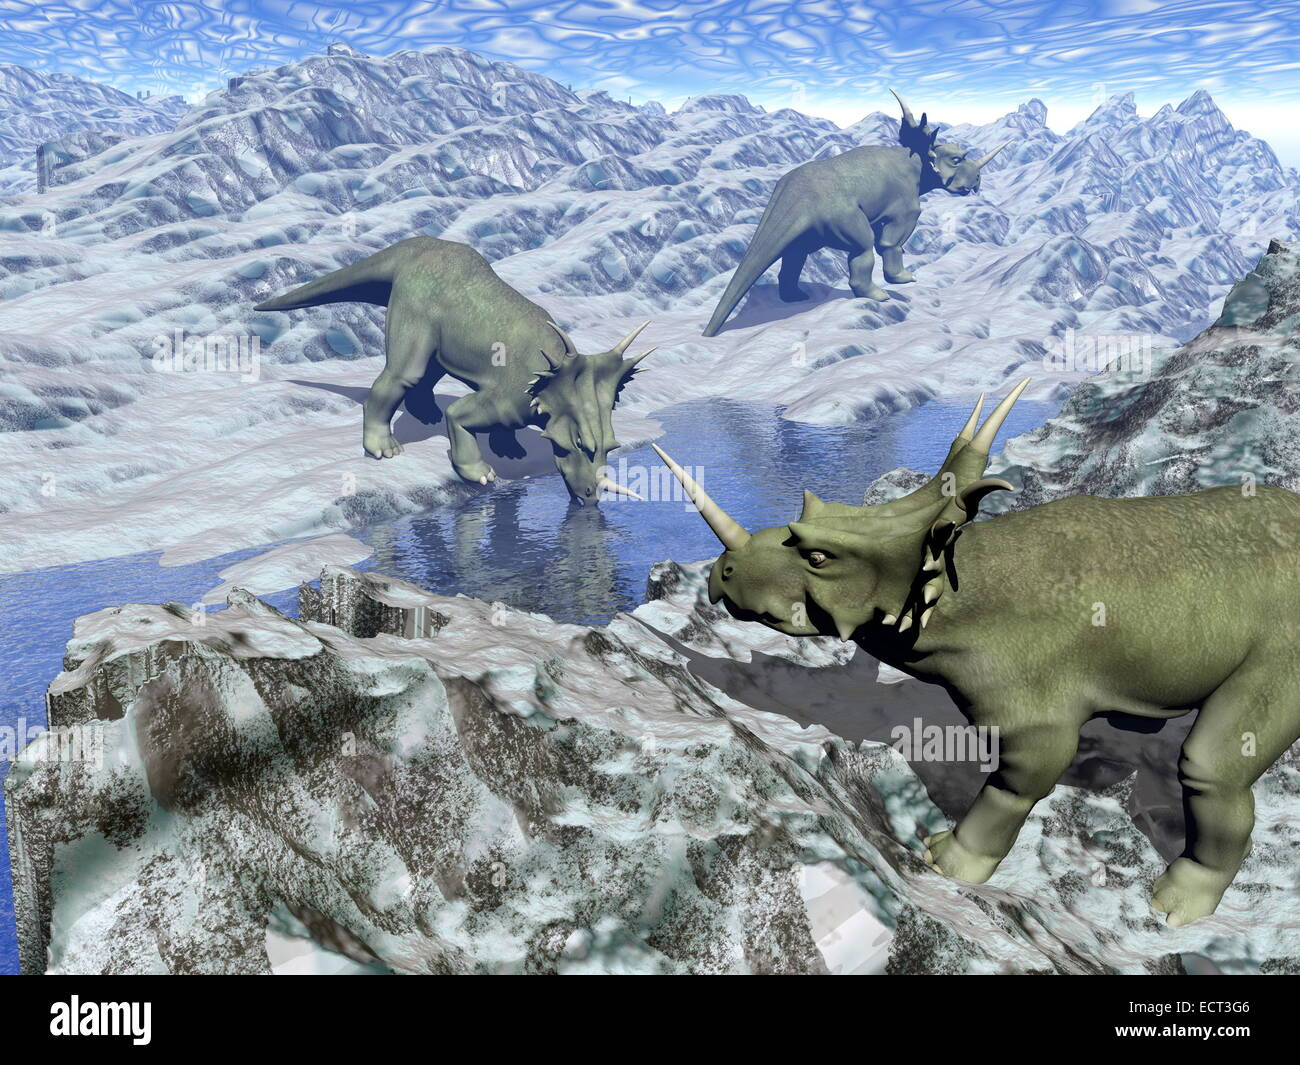 Three styracosaurus dinosaurs in icy desert landscape with water by blue day - Stock Image